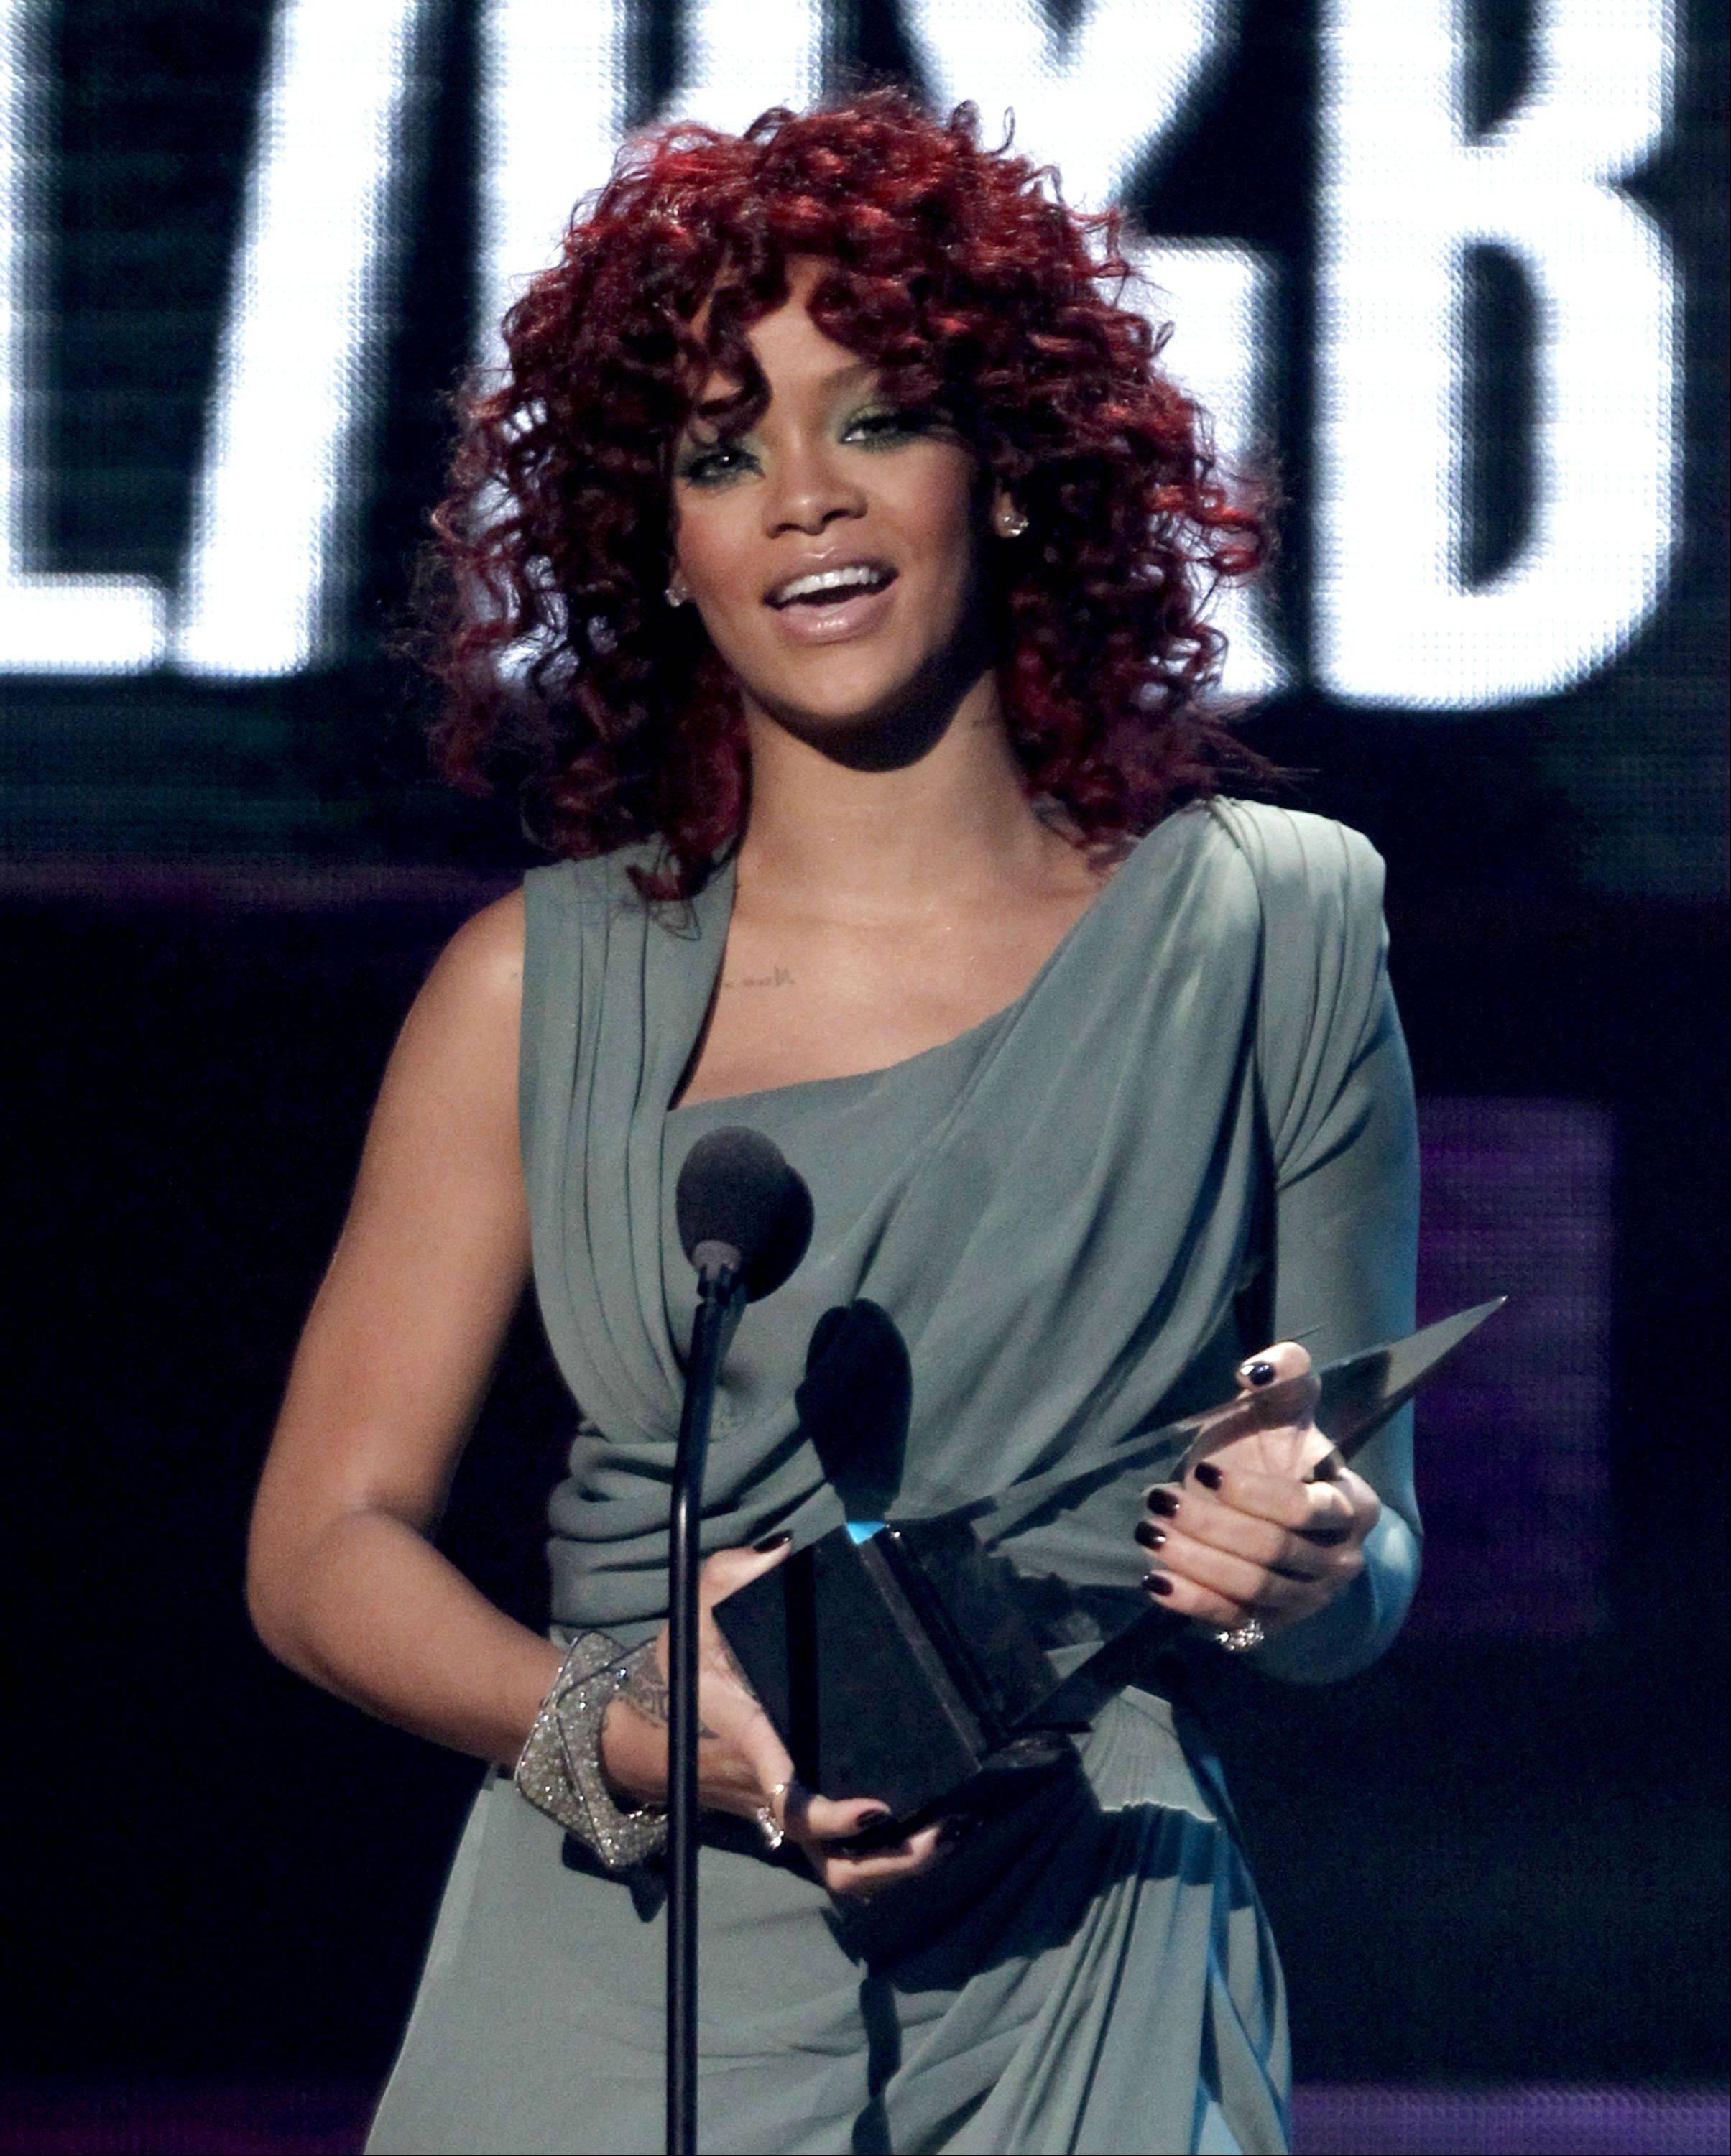 Rihanna accepts the award for soul R&B favorite female artist at the 38th Annual American Music Awards on Nov. 21, 2010 in Los Angeles.